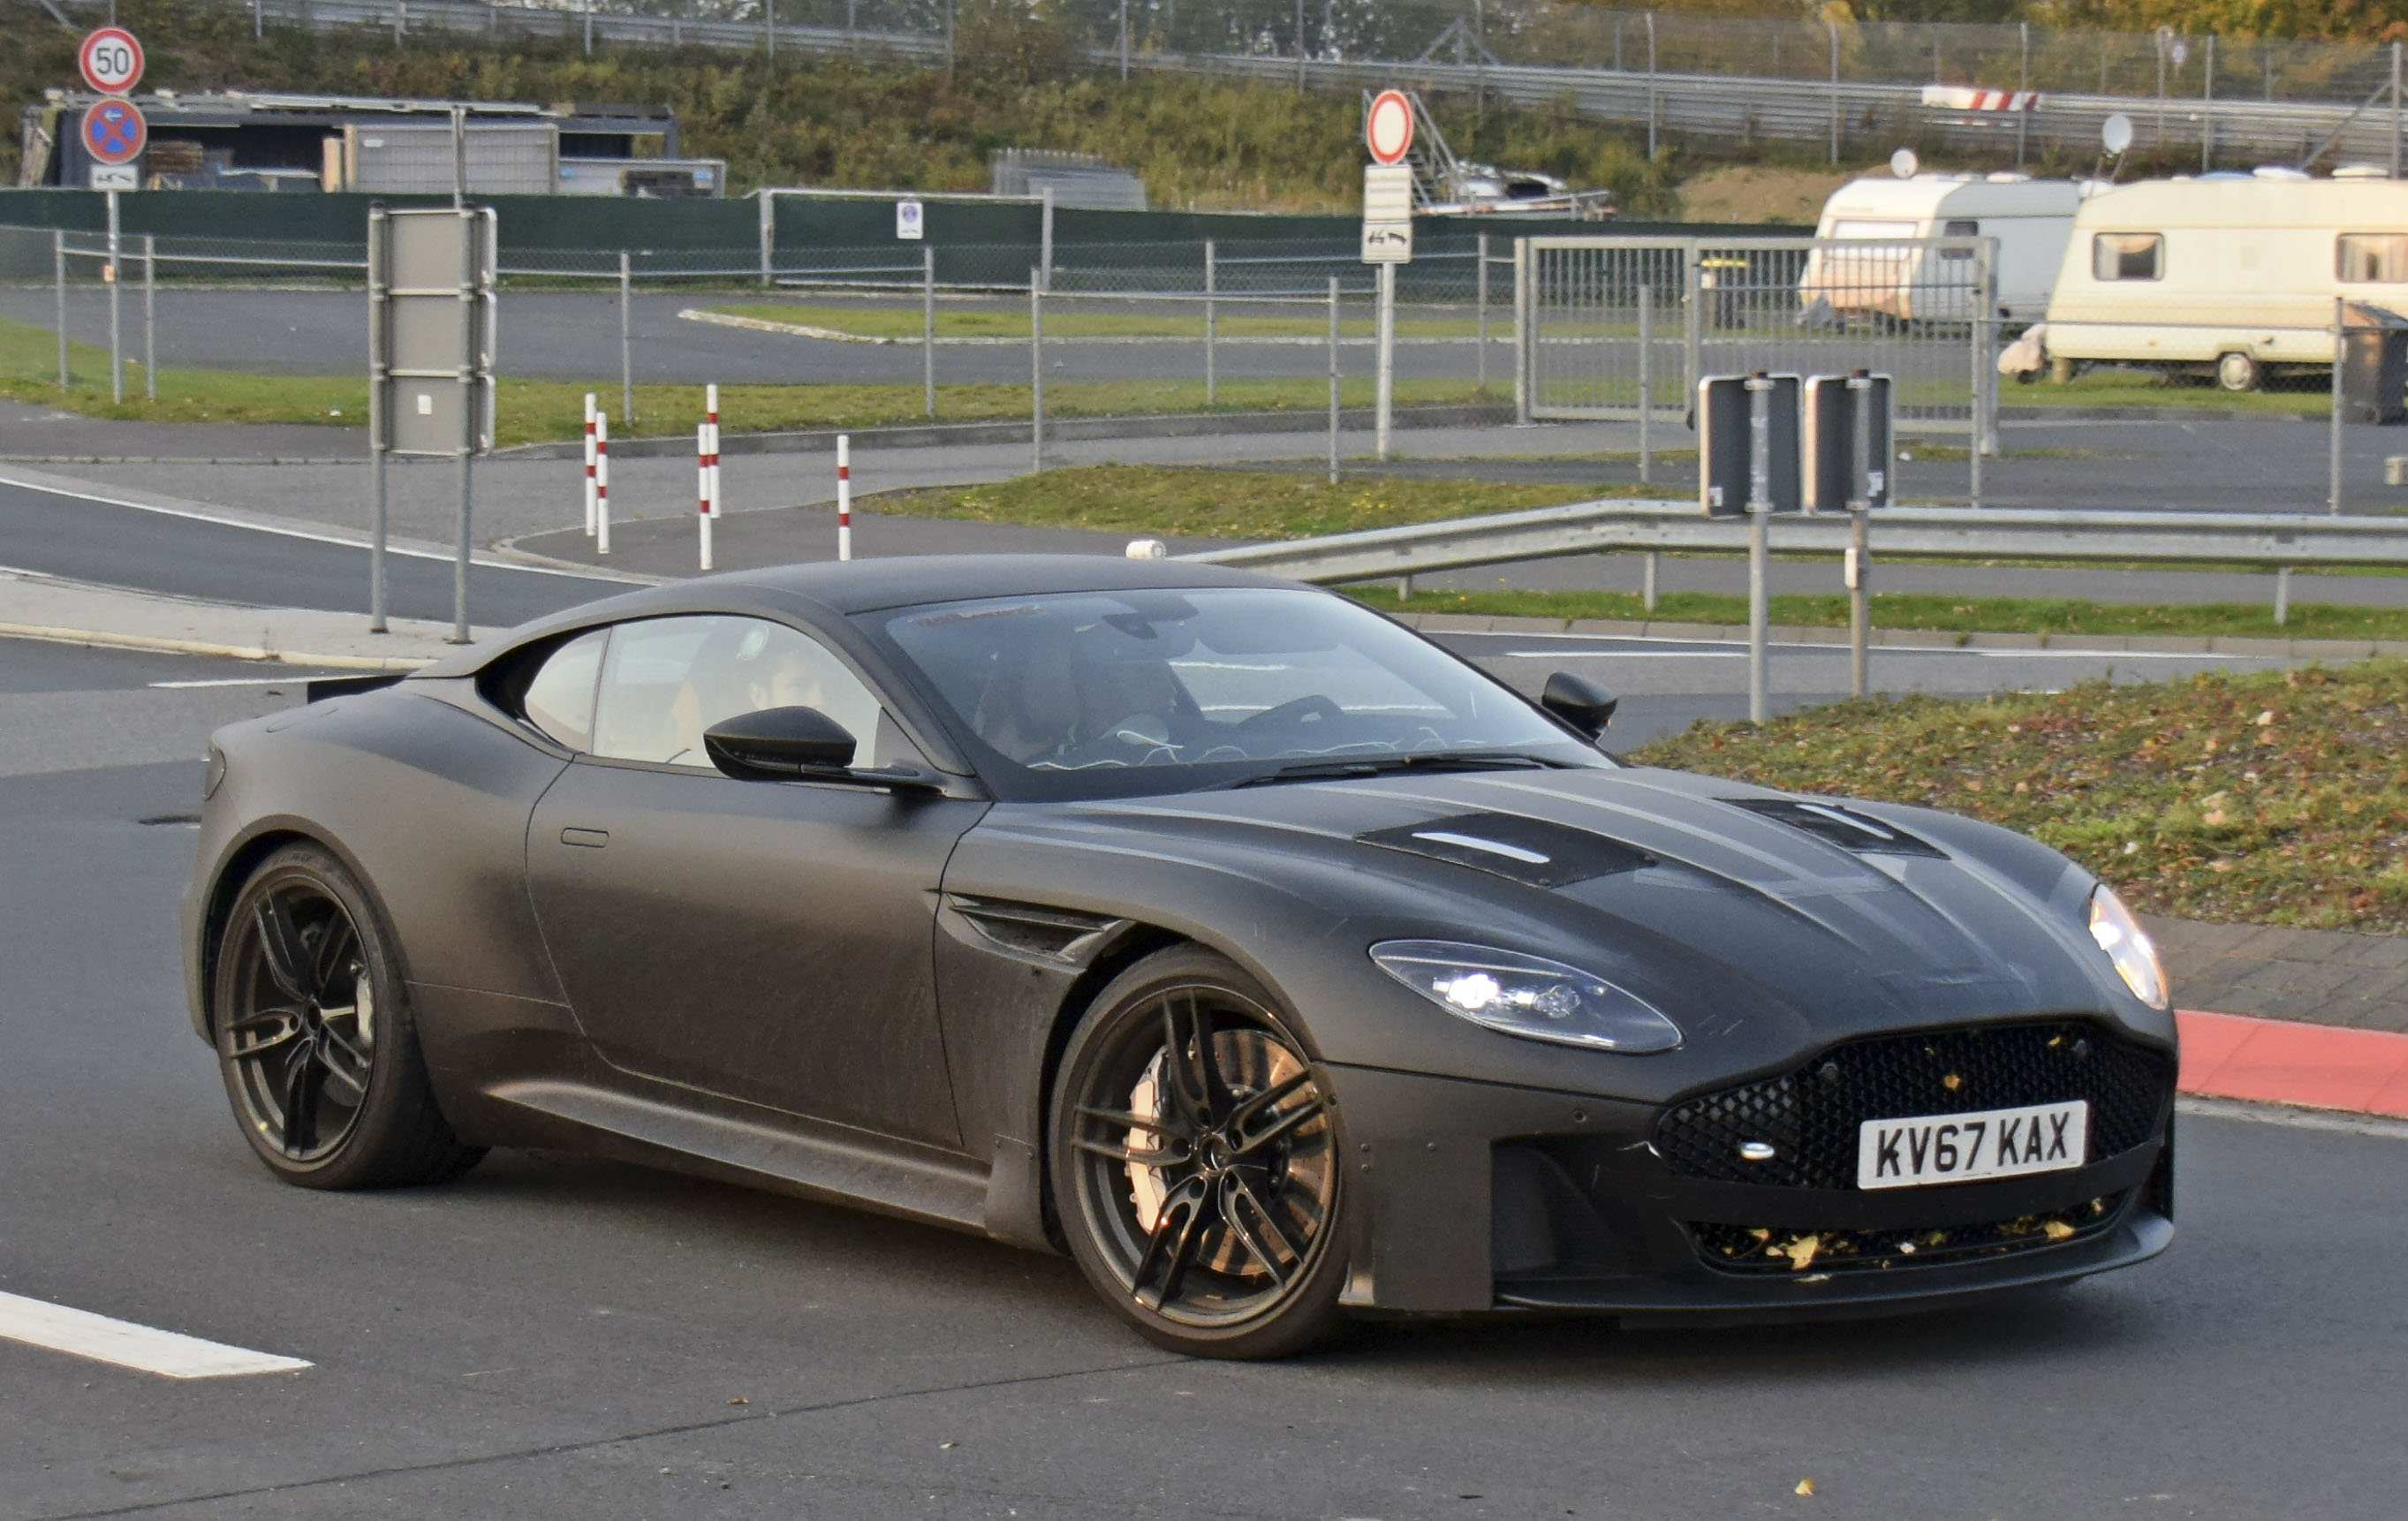 27 Best Review 2019 Aston Martin Vanquish Price Performance and New Engine with 2019 Aston Martin Vanquish Price